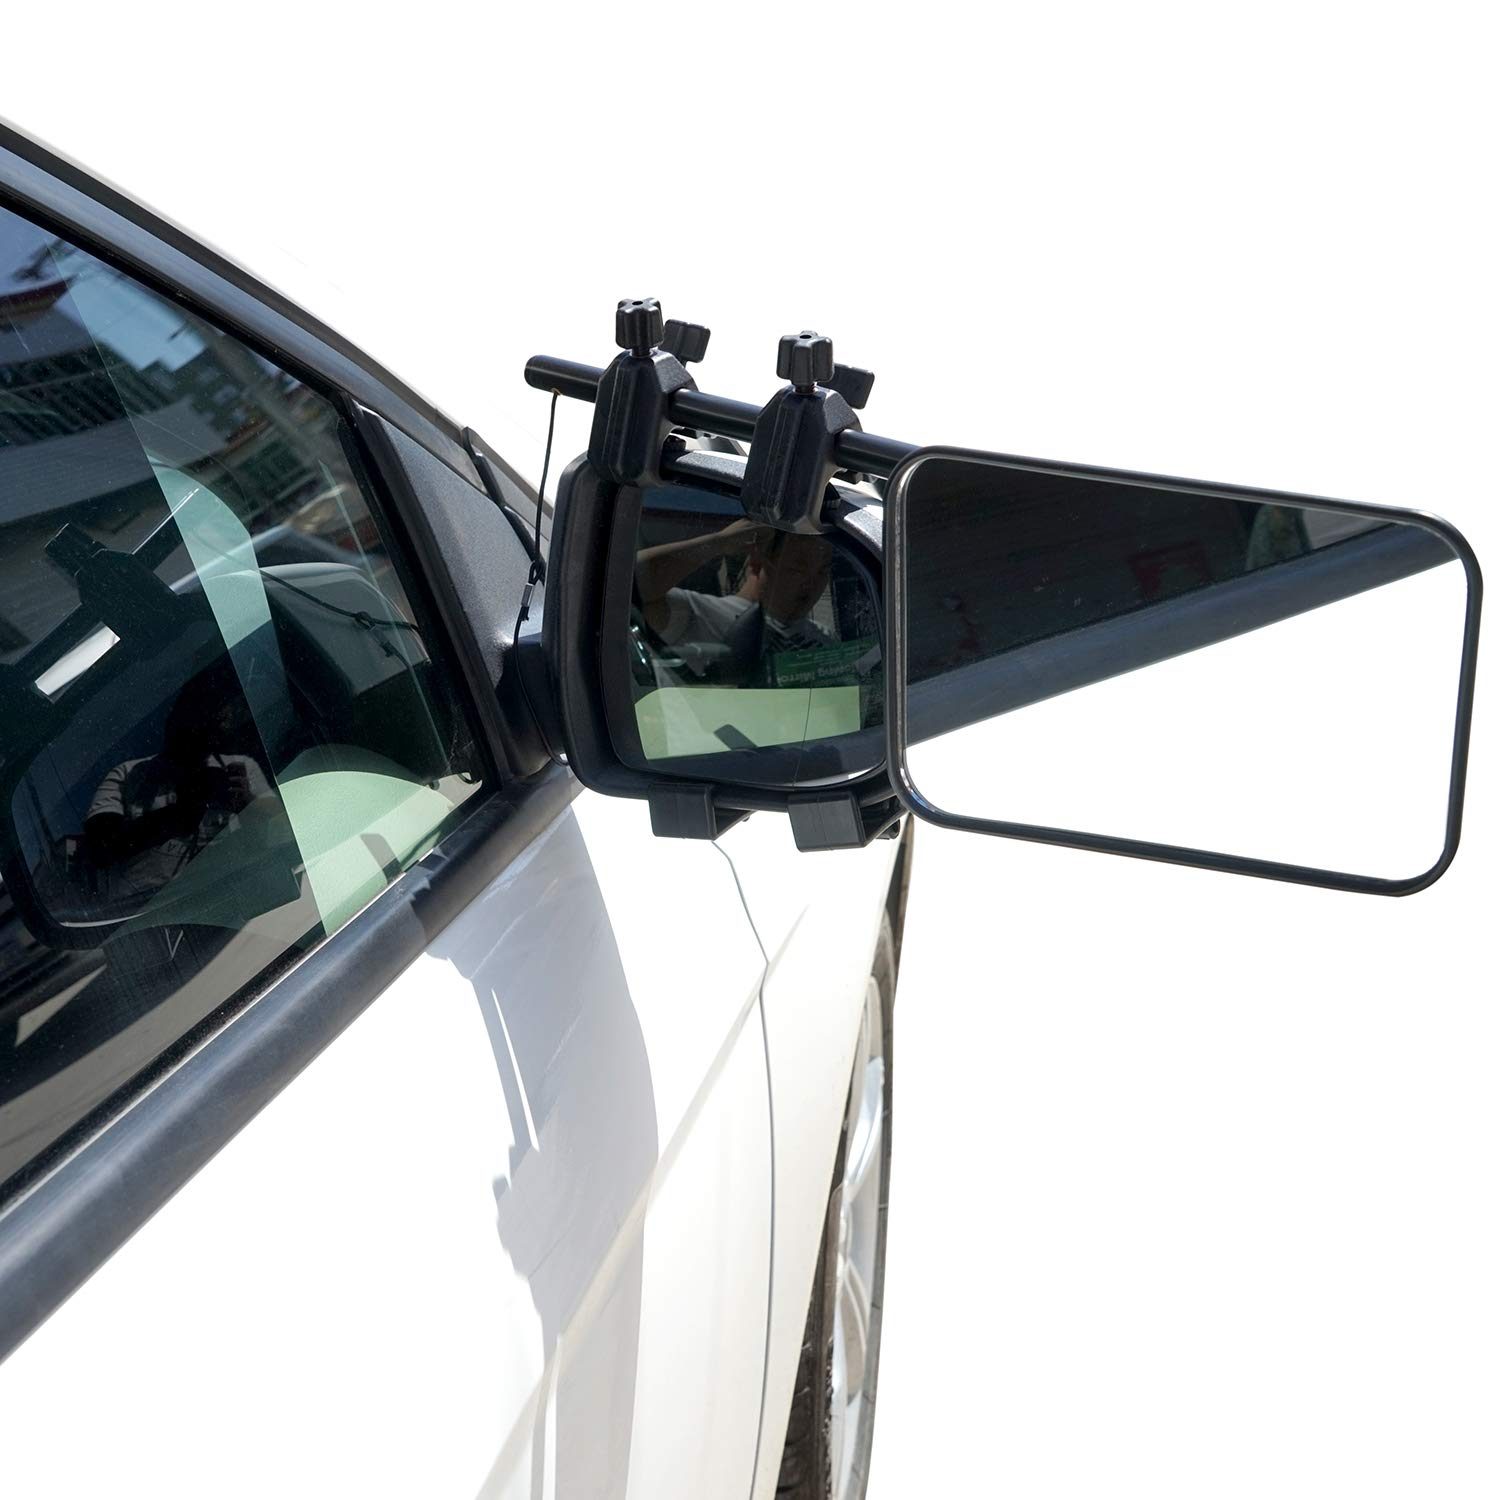 Homeon Wheels Clip-On Towing Mirror 1 Piece Universal Extended Mirror and Extra Wide Adjustable for Caravan Camper Boat Trailer